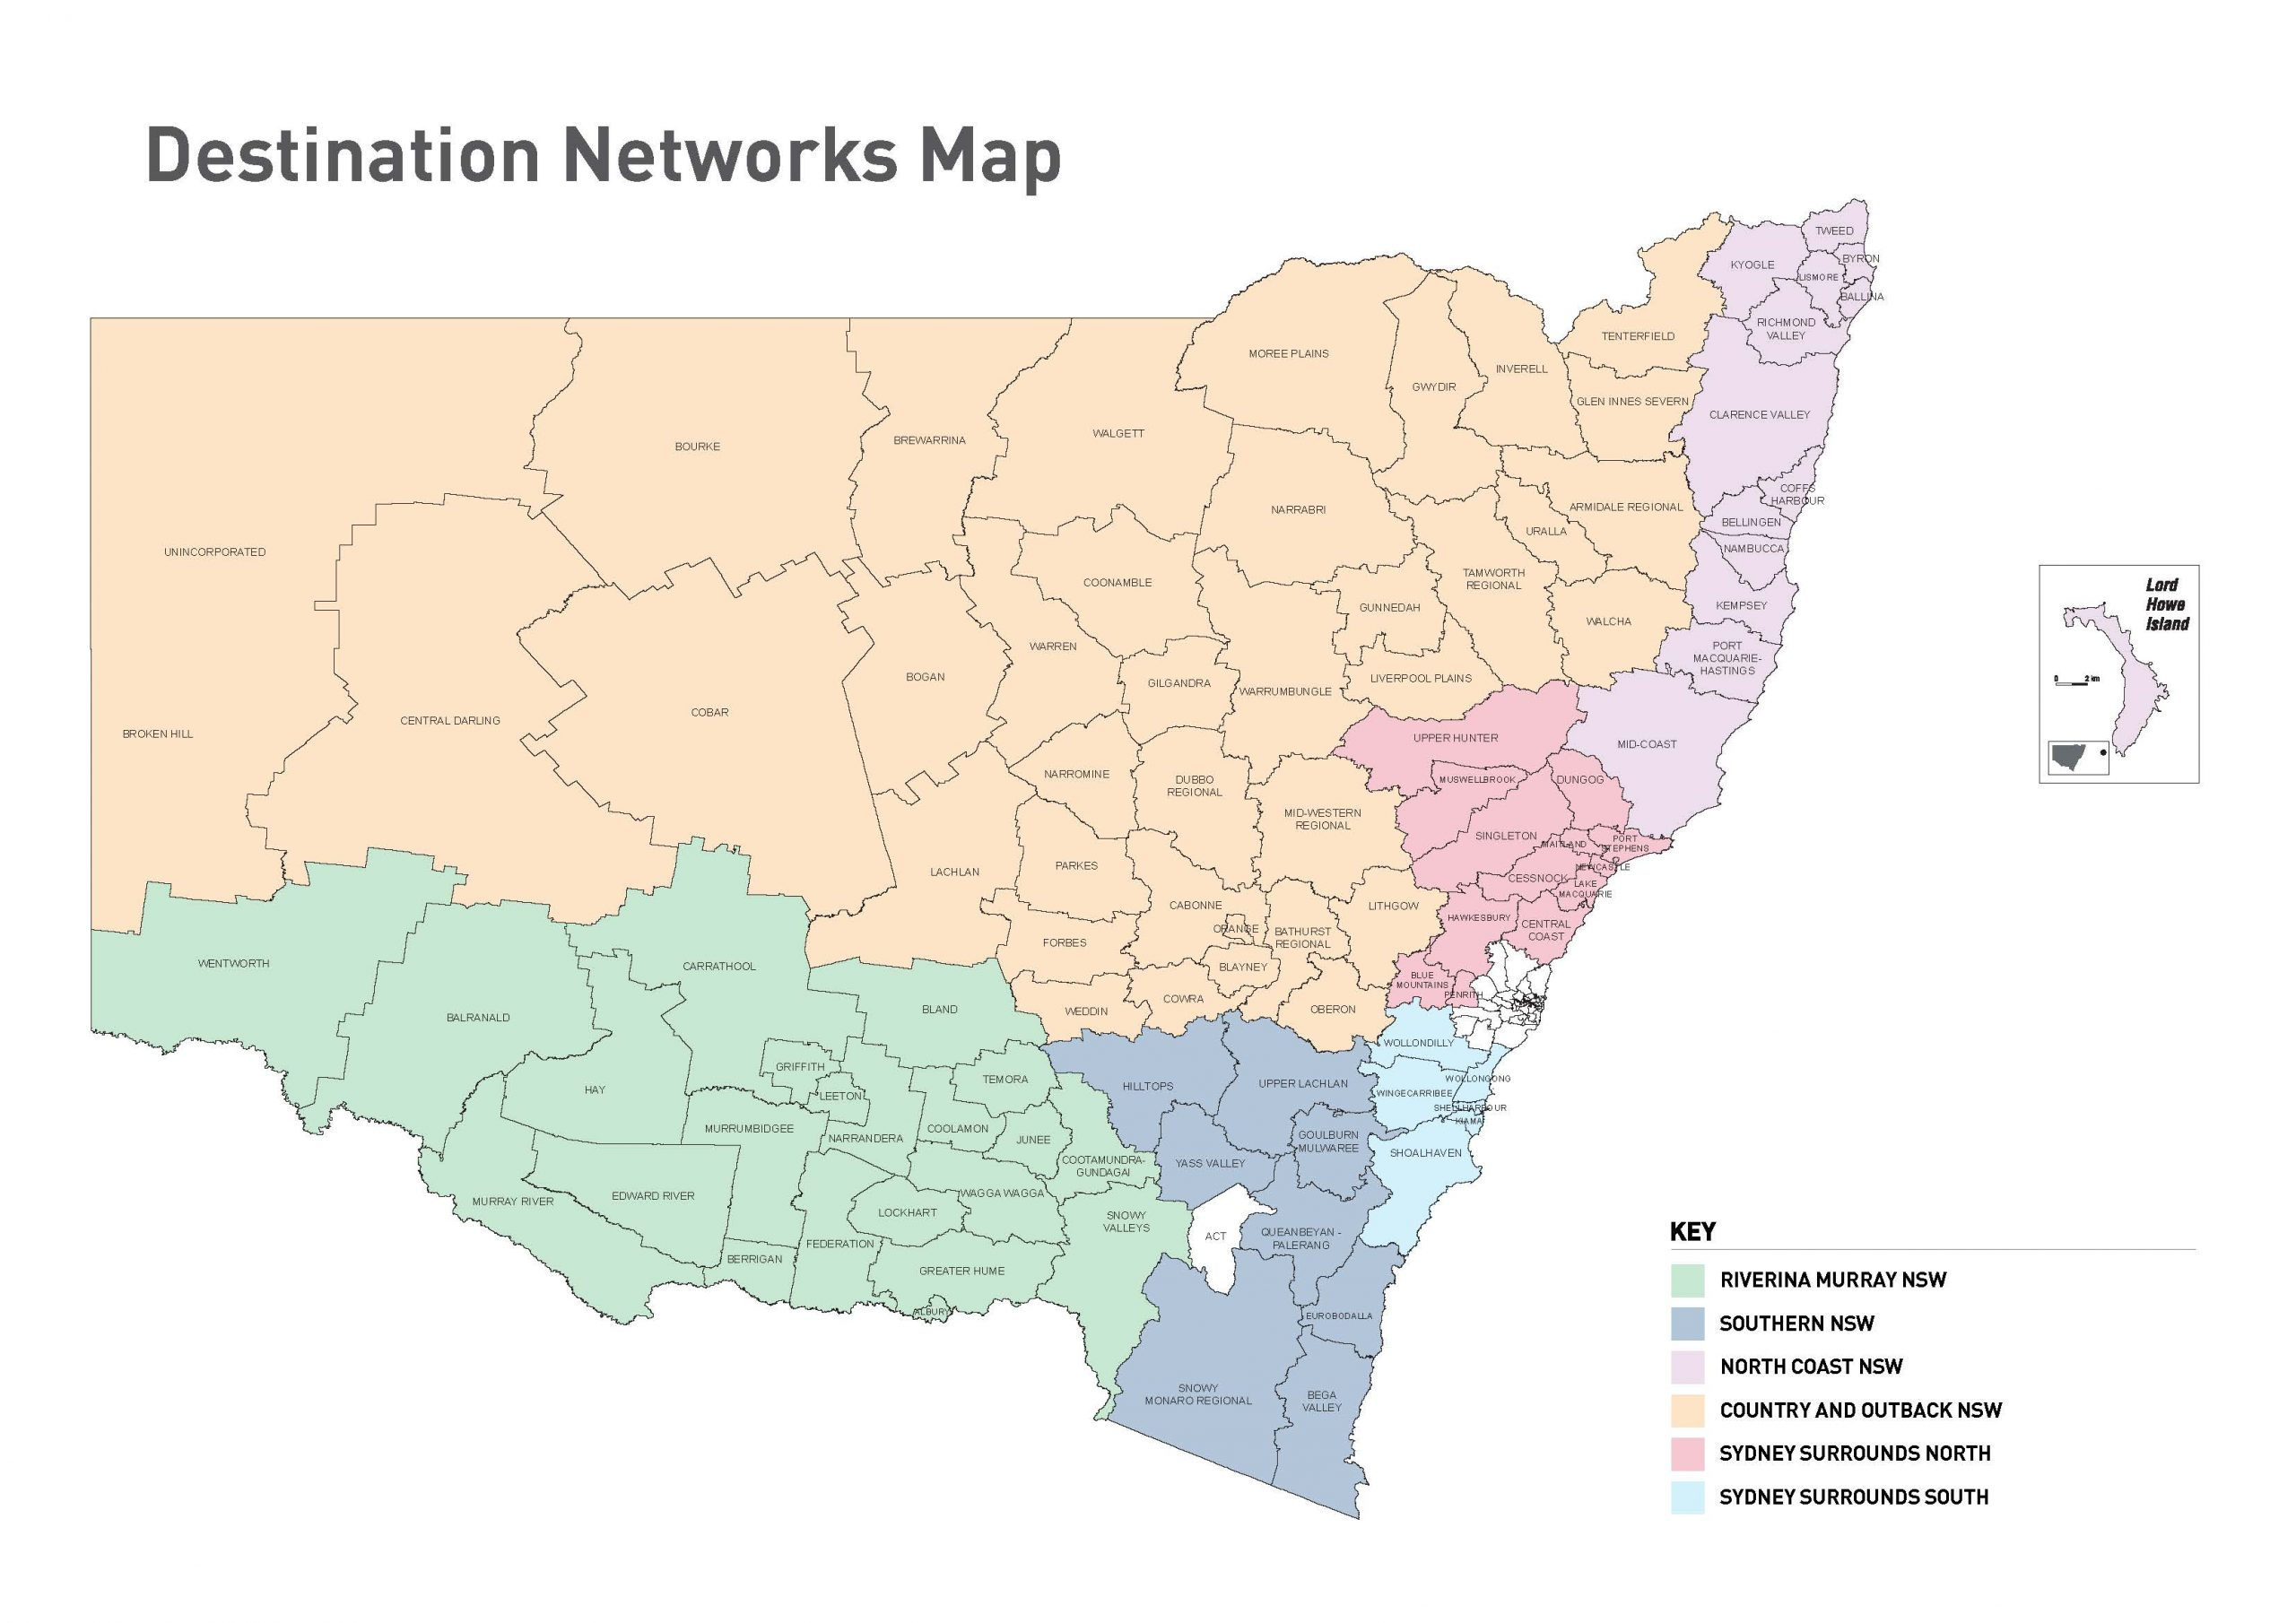 Destination Networks Map